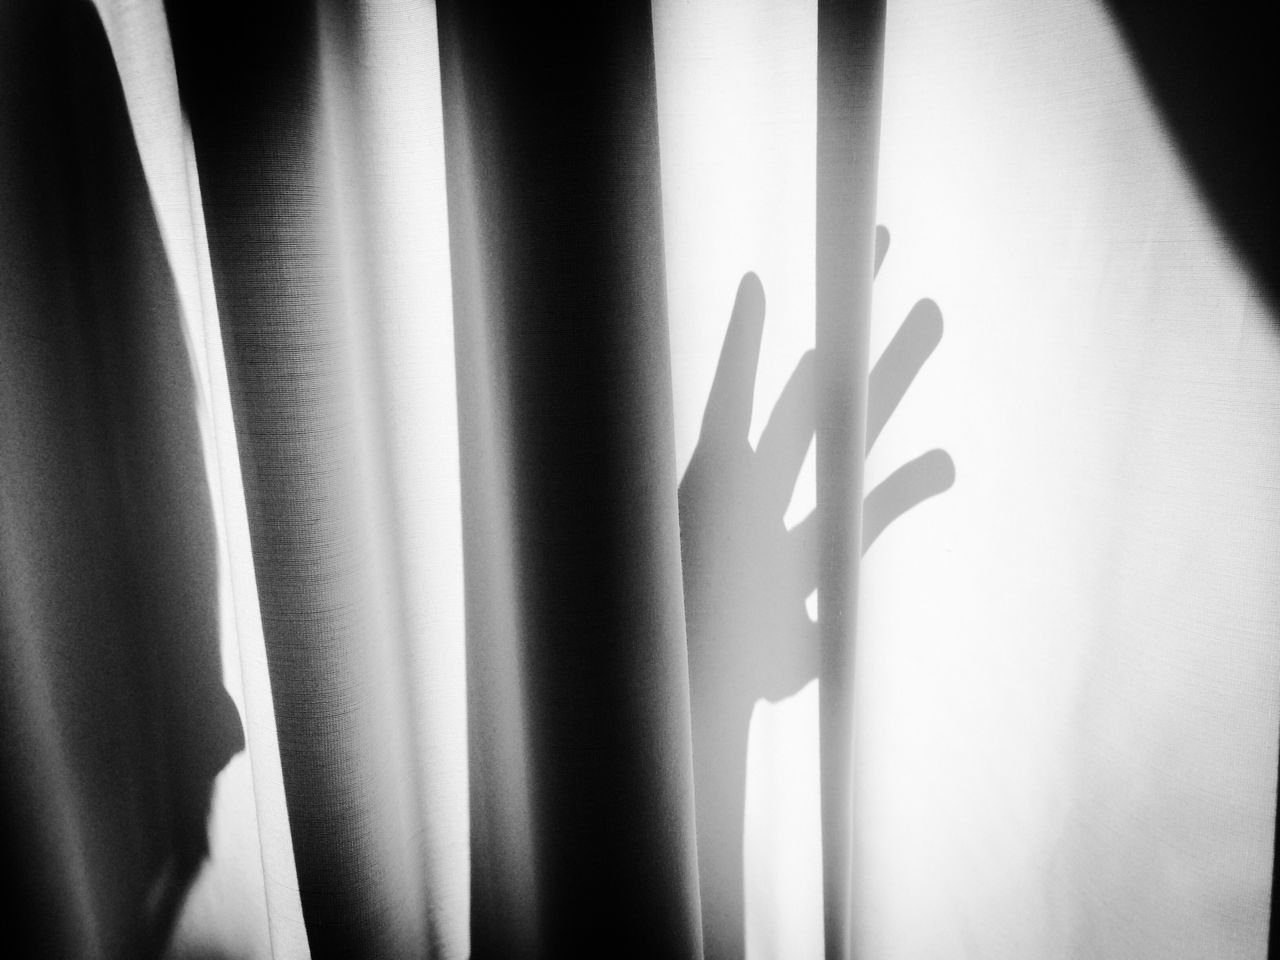 Shadow Of Human Hand On White Curtain